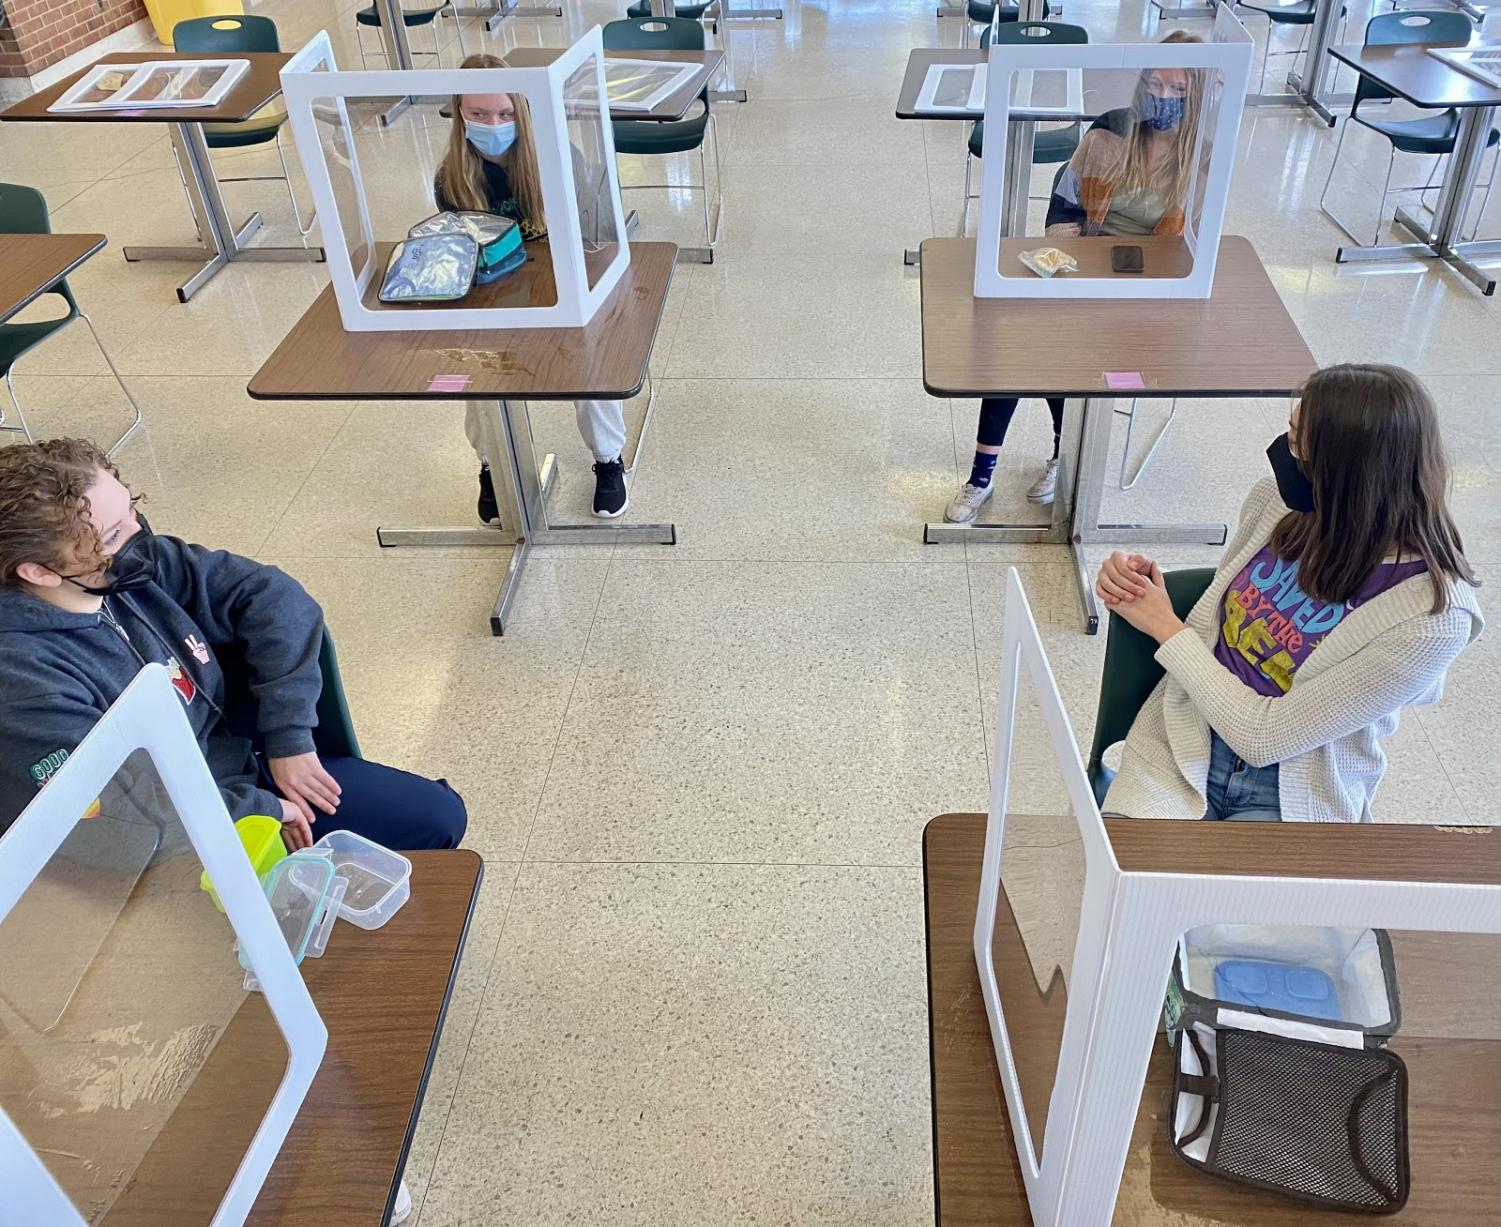 """Social studies teacher Bridget Cooley believes students may struggle with the changes throughout their day. """"I worry most about students that don't feel comfortable coming back,"""" Cooley said."""